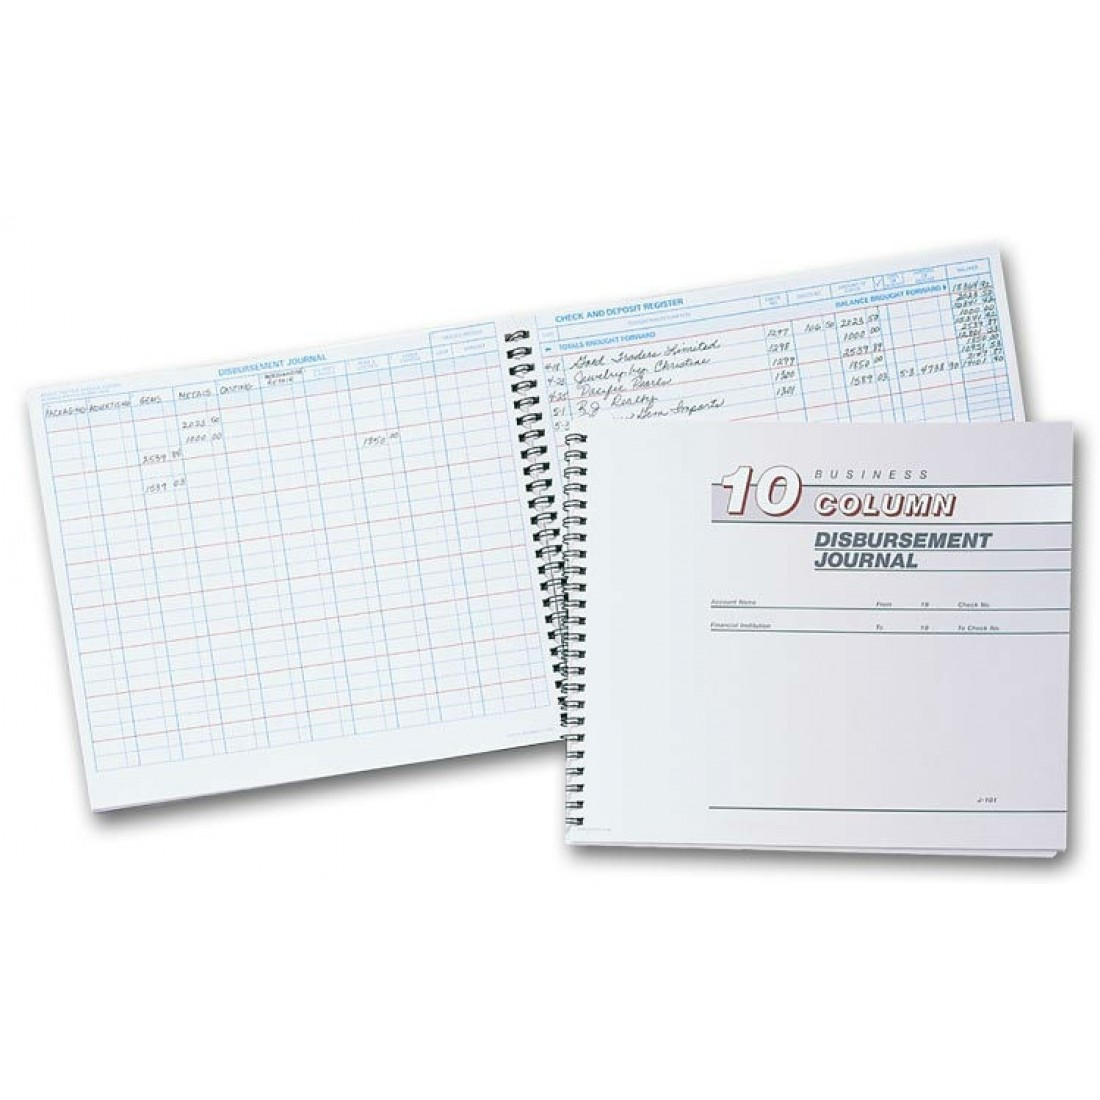 126051N, Disbursement Journal - 10 Columns